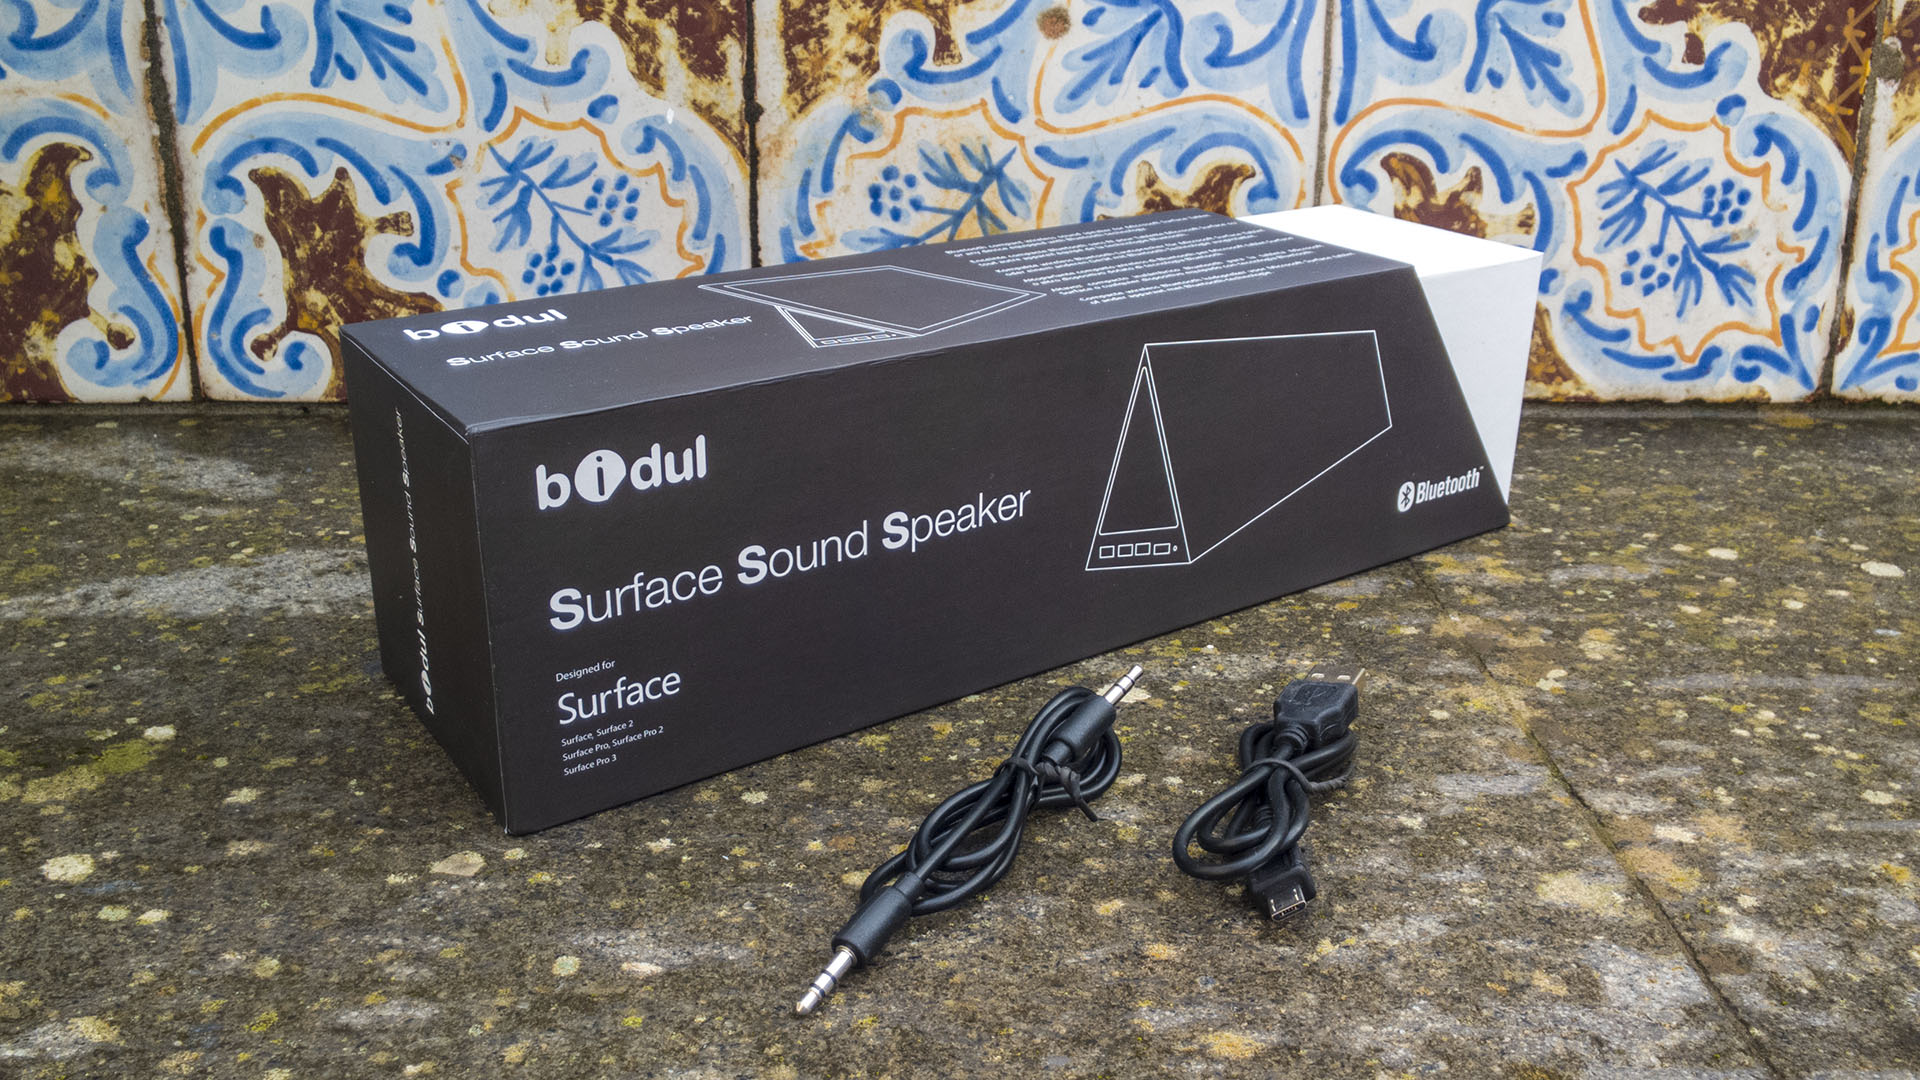 Surface Sound Speaker Bidul (1)